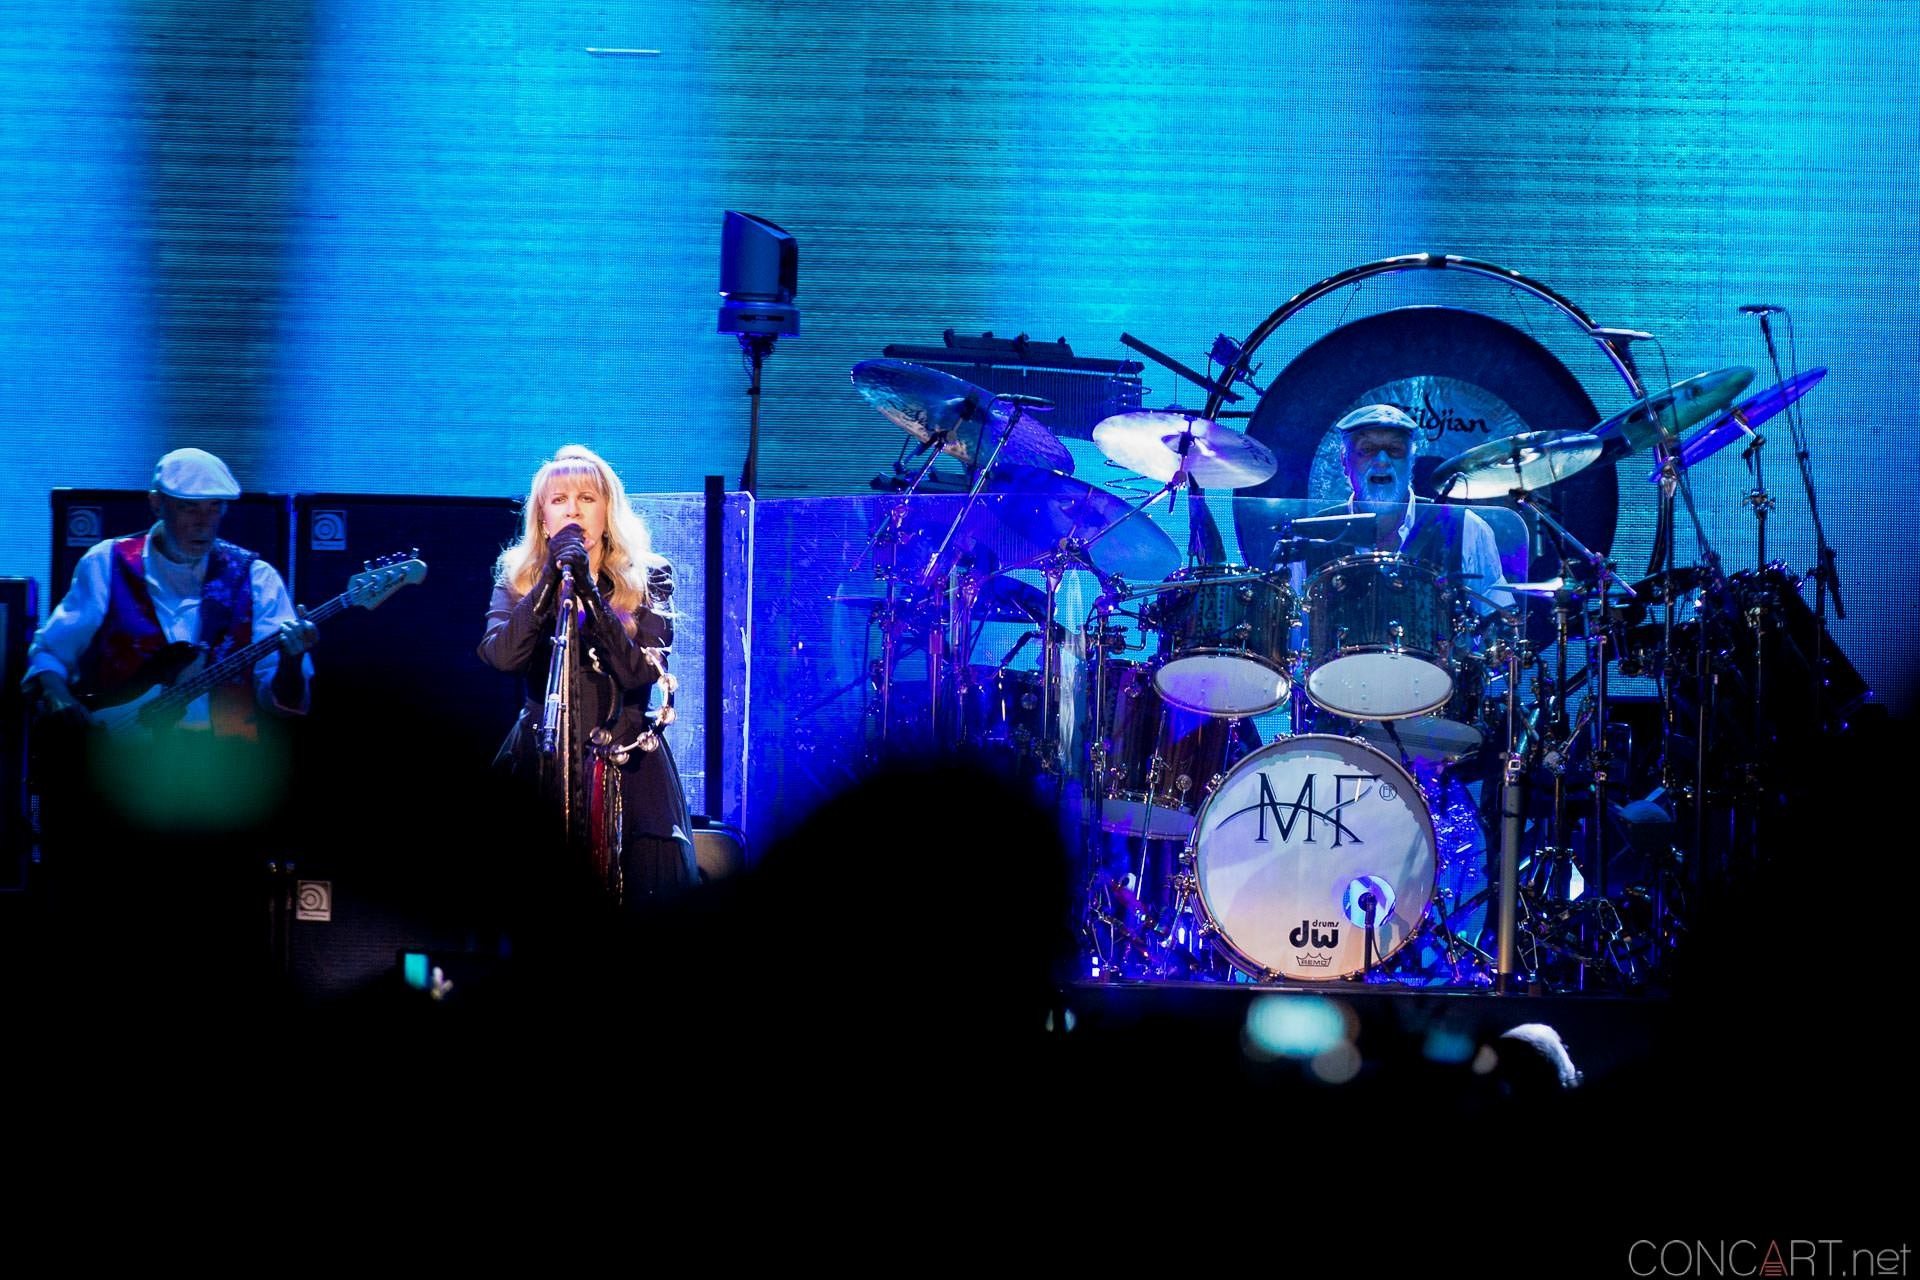 008-fleetwood-mac-live-indianapolis-bankers-life-fieldhouse-2014